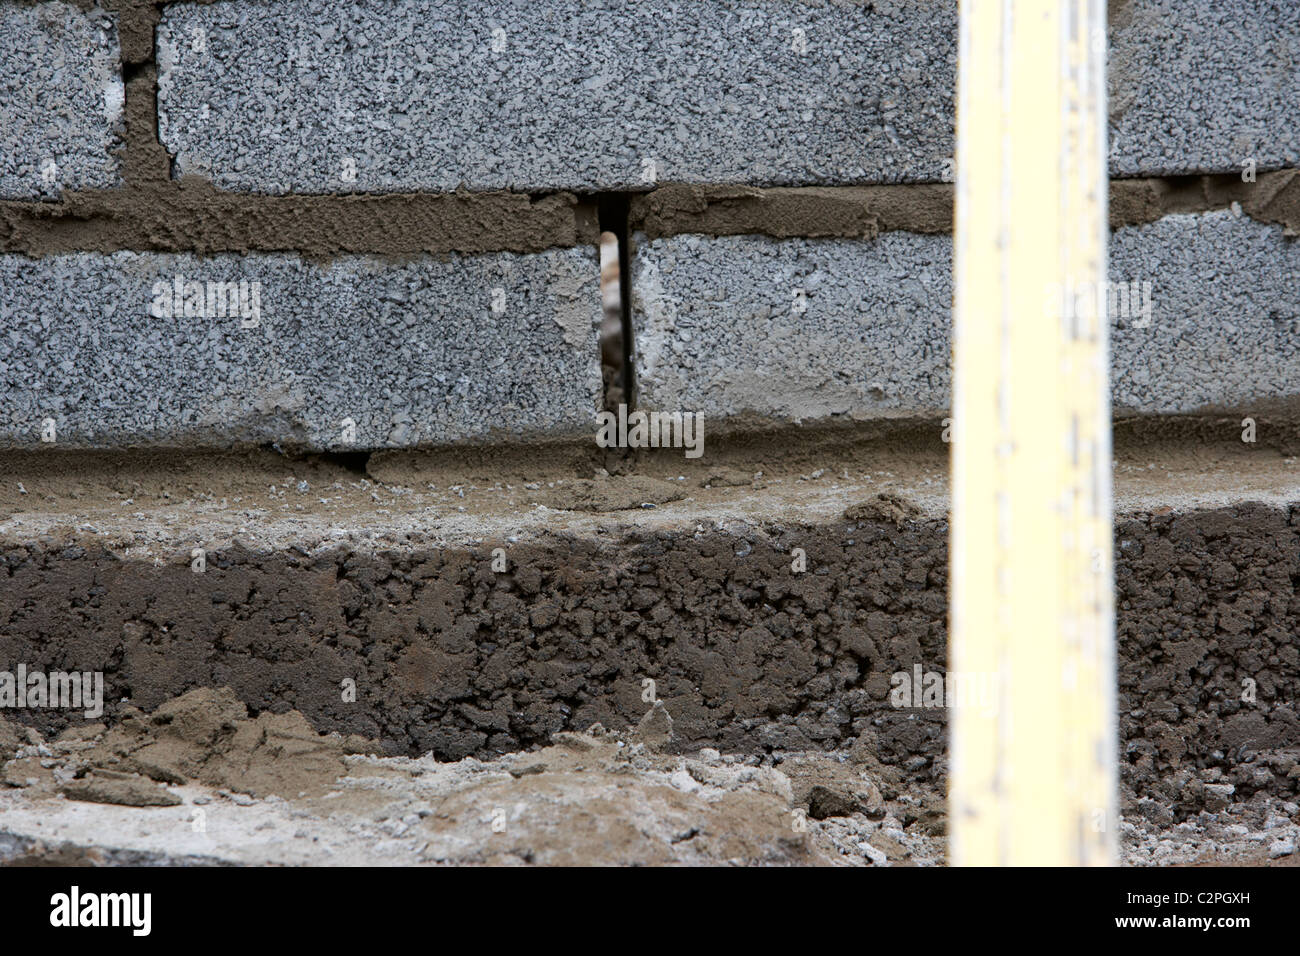 Drainage Gap In Bricklaying Wall With Half Cement Breeze Blocks